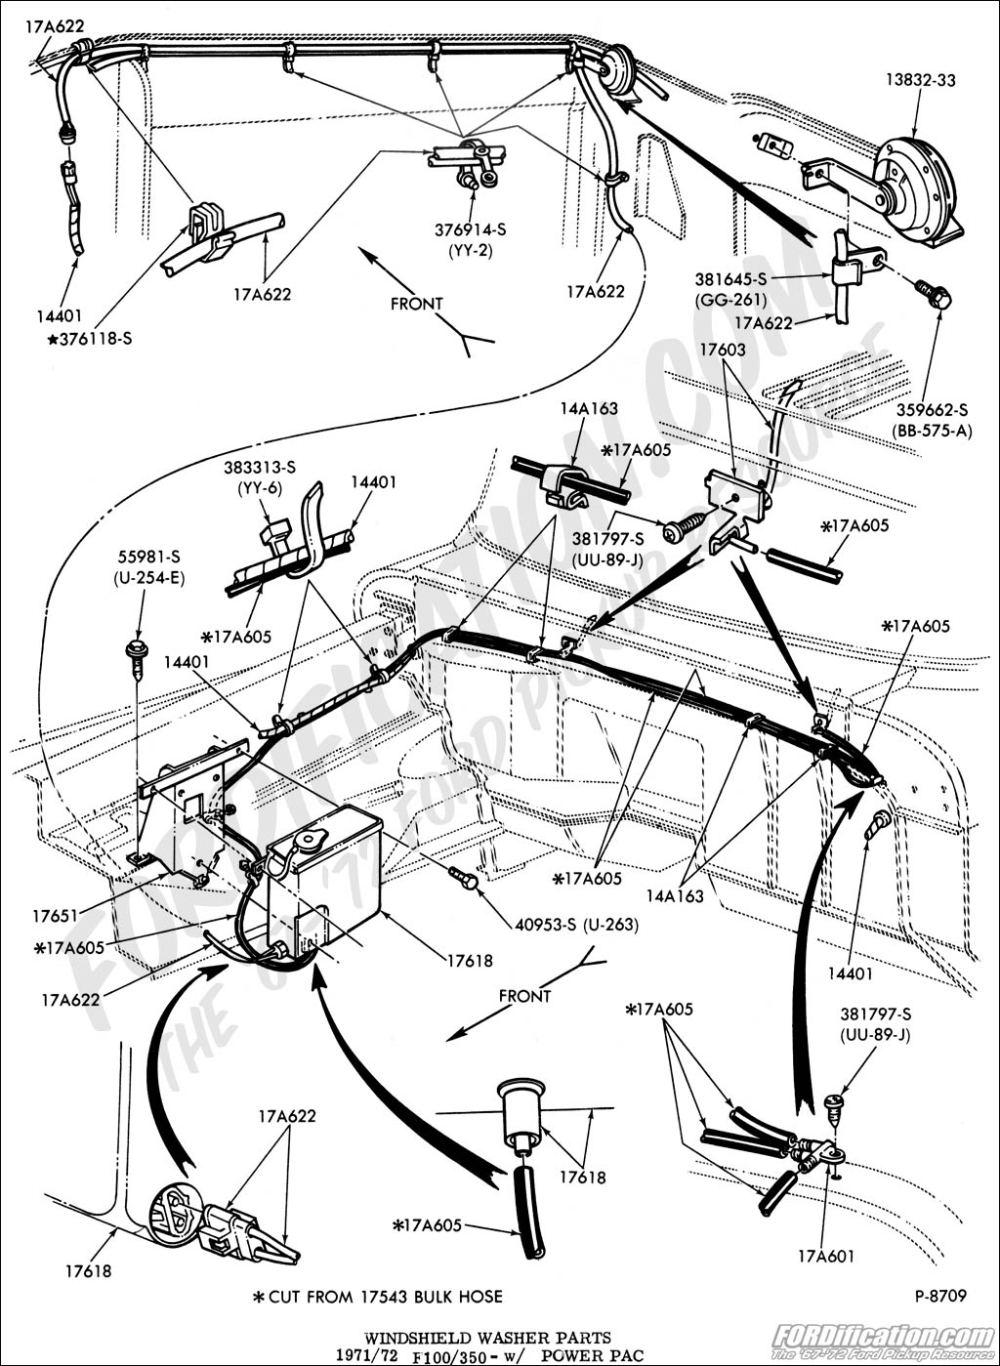 medium resolution of 1024x1399 ford truck technical drawings and schematics 1024x1399 ford truck technical drawings and schematics 670x550 ford truck wiring diagrams